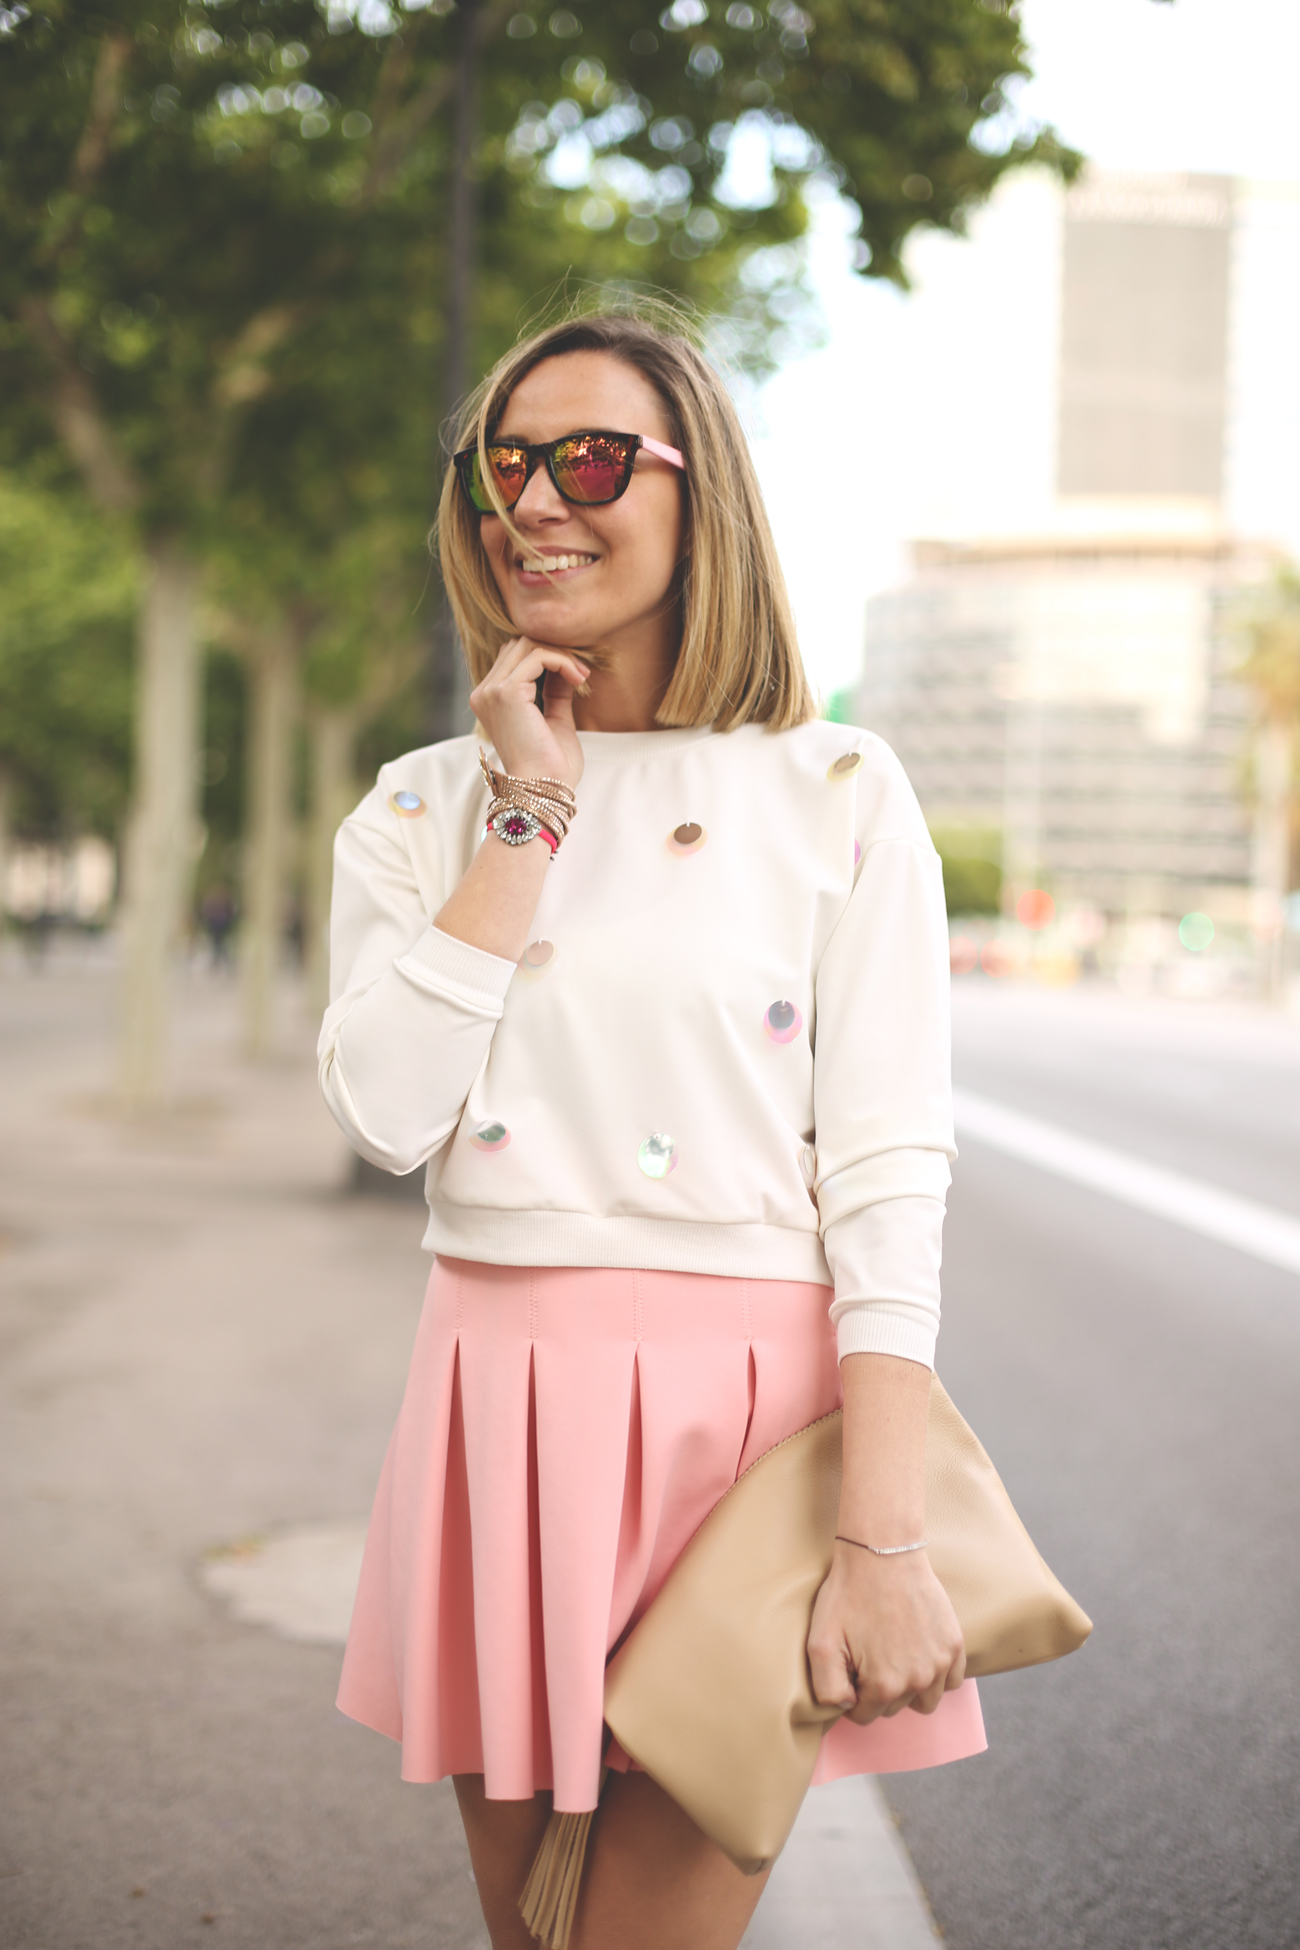 Fashion blogger, pink skirt, blonde girl, spanish blog, street style, barcelona, white sandals, swarovski,